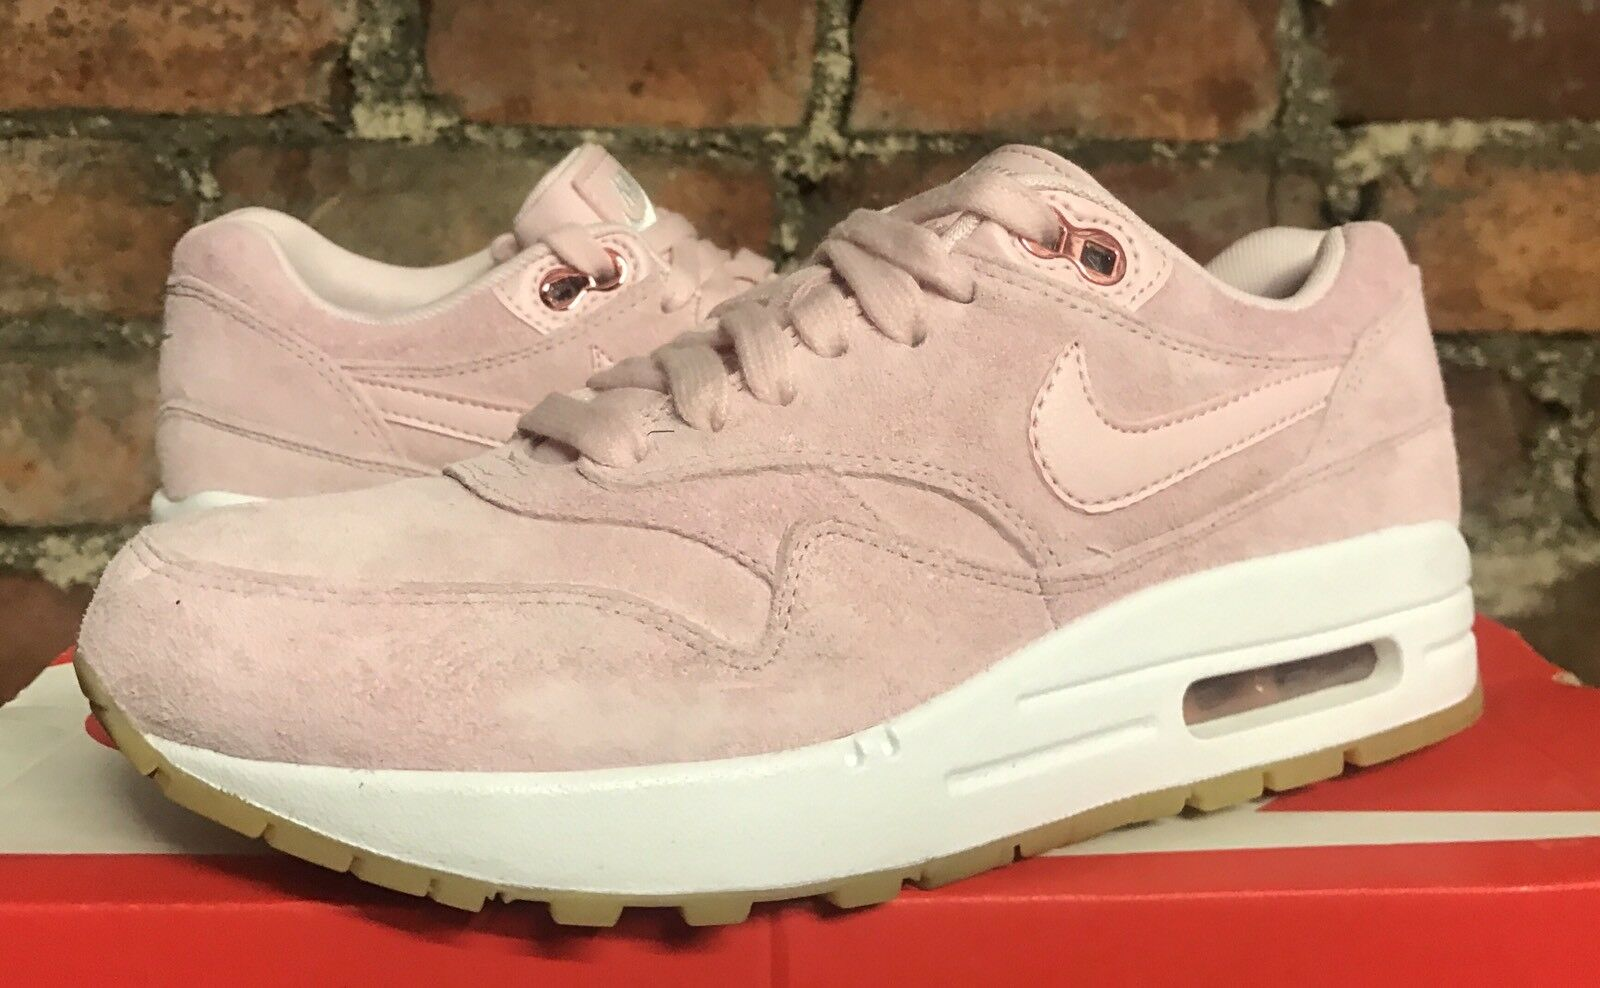 WOMENS NIKE AIR MAX 1 SD PRISM PINK WHITE UK8 EU42.5 US10.5 919484 600 TRAINERS